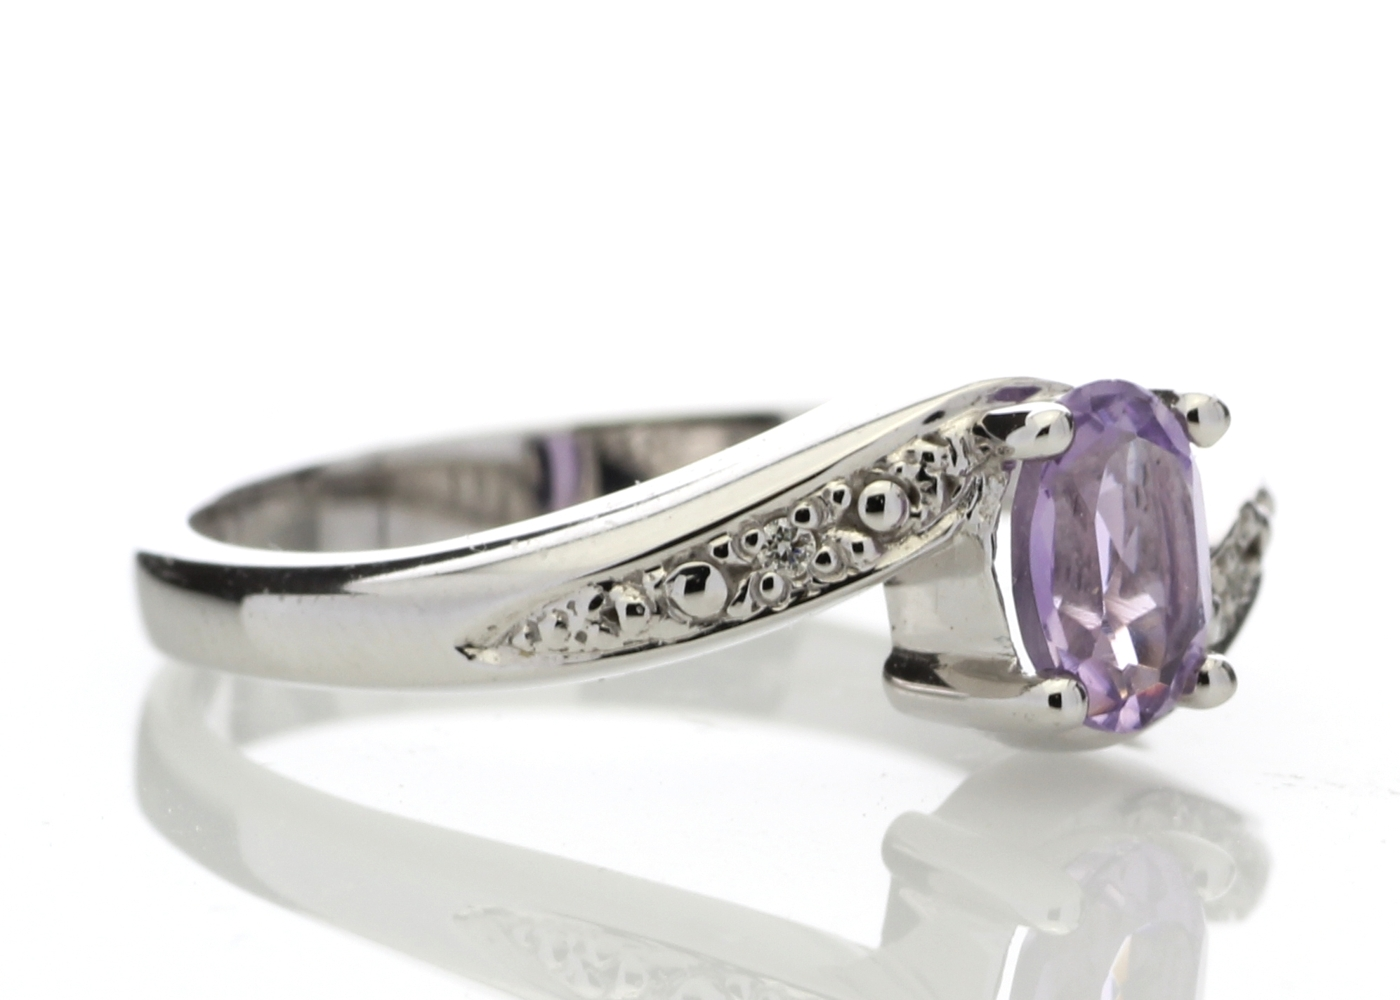 9ct White Gold Amethyst Diamond Ring 0.01 Carats - Image 4 of 4